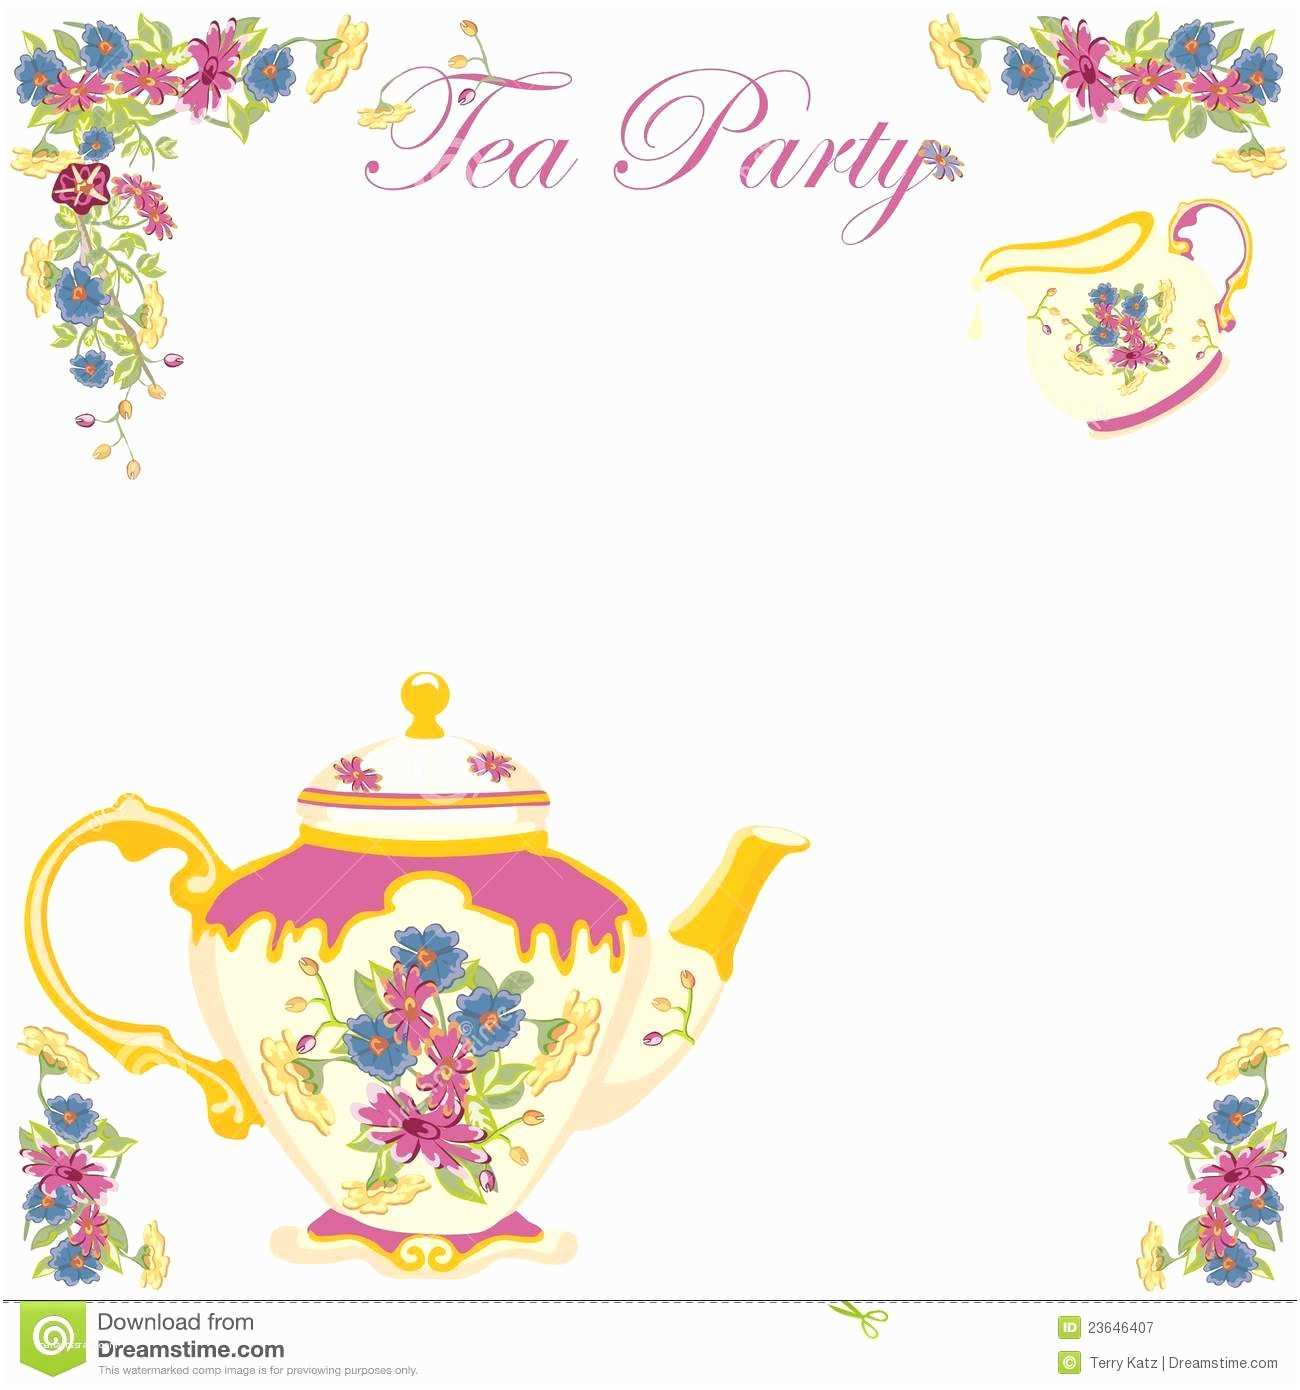 Tea Party Invitations Tea Party Invites